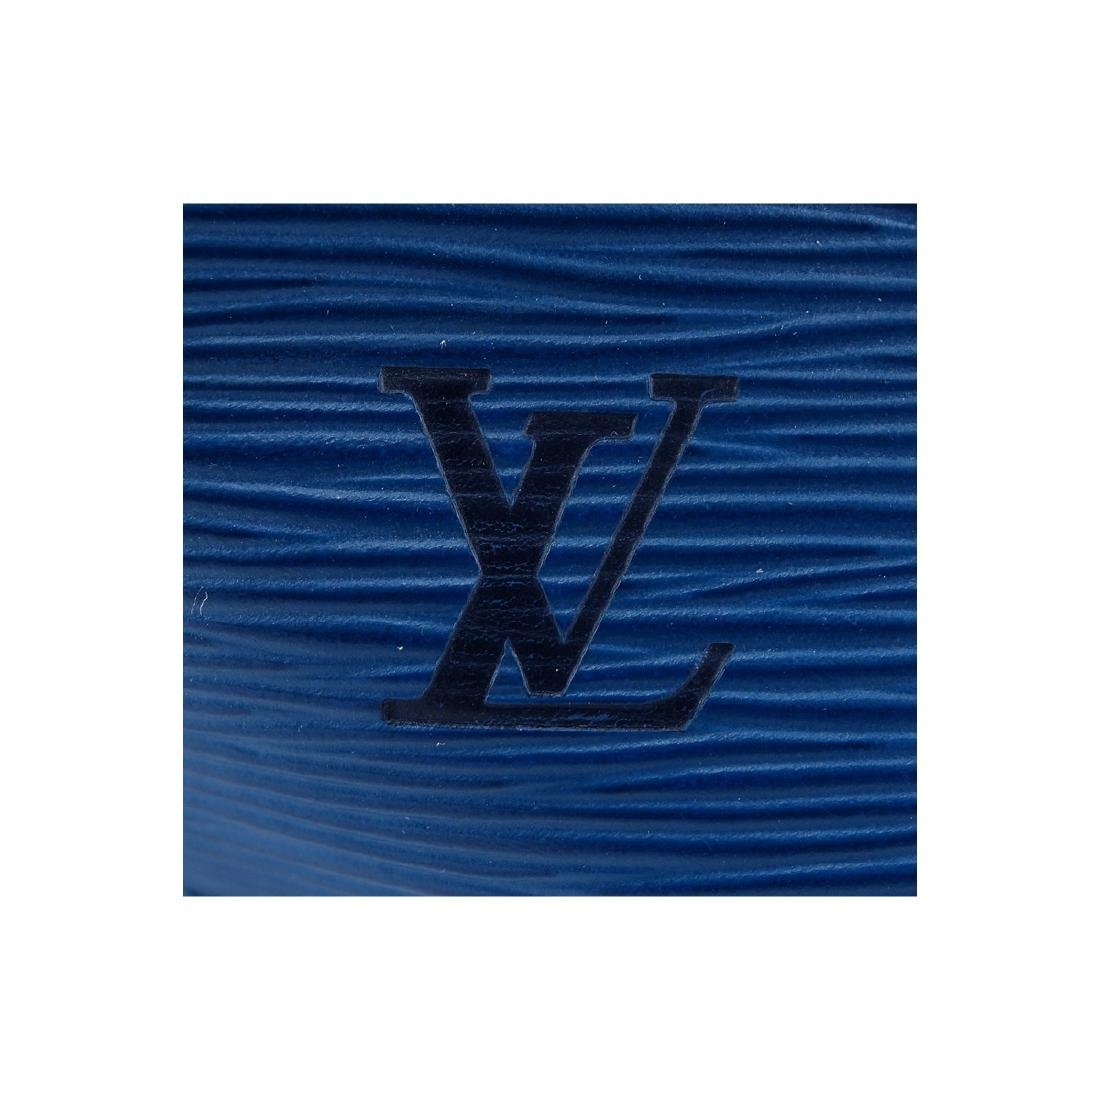 Louis Vuitton Blue/Black Epi Leather Noe Bicolor - 5